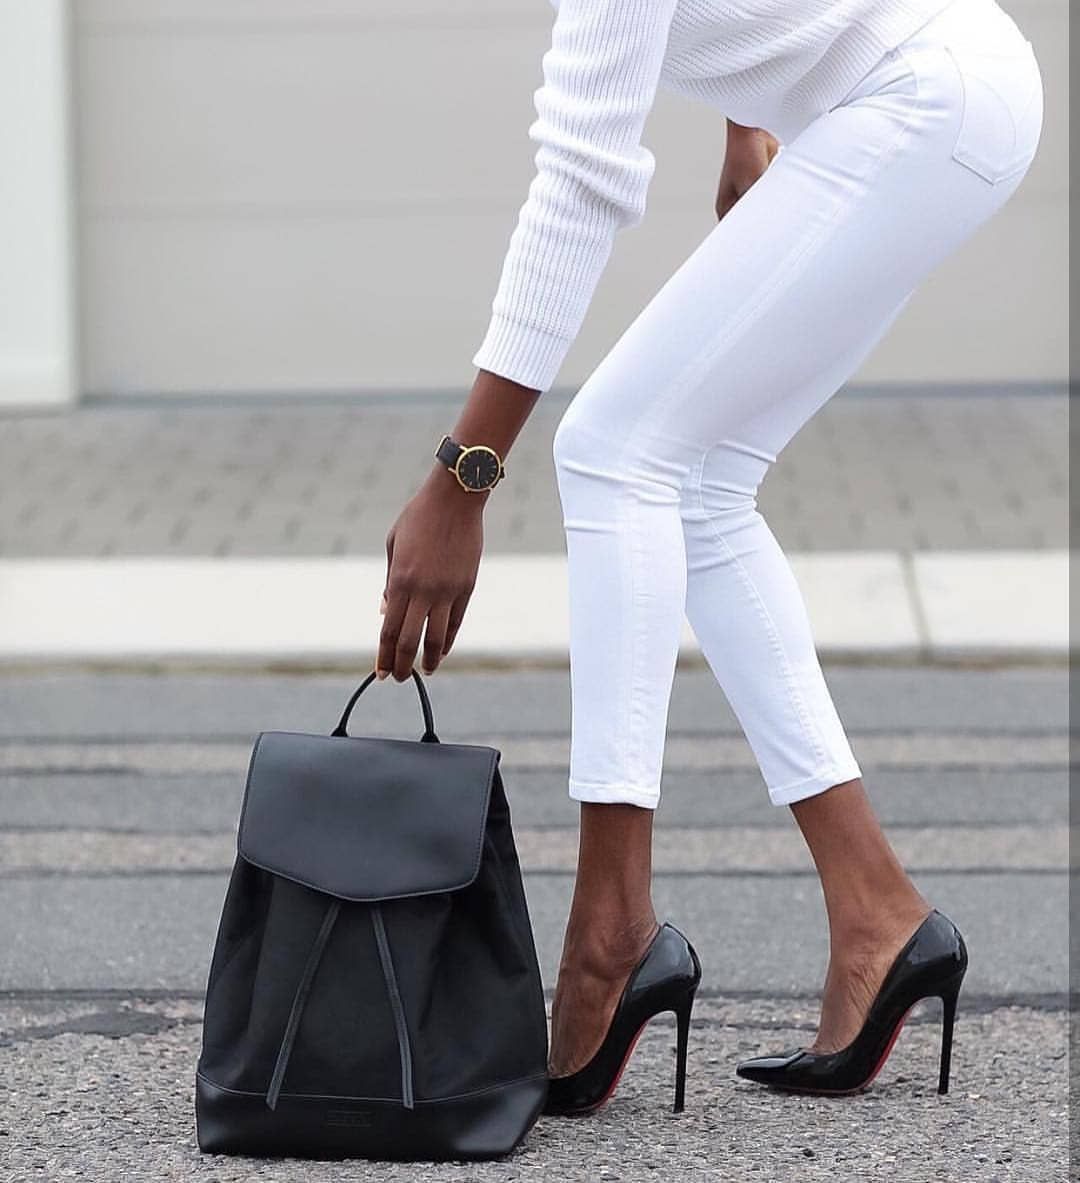 All White Look With Black Accessories: Monochrome Essentials For Spring 2020